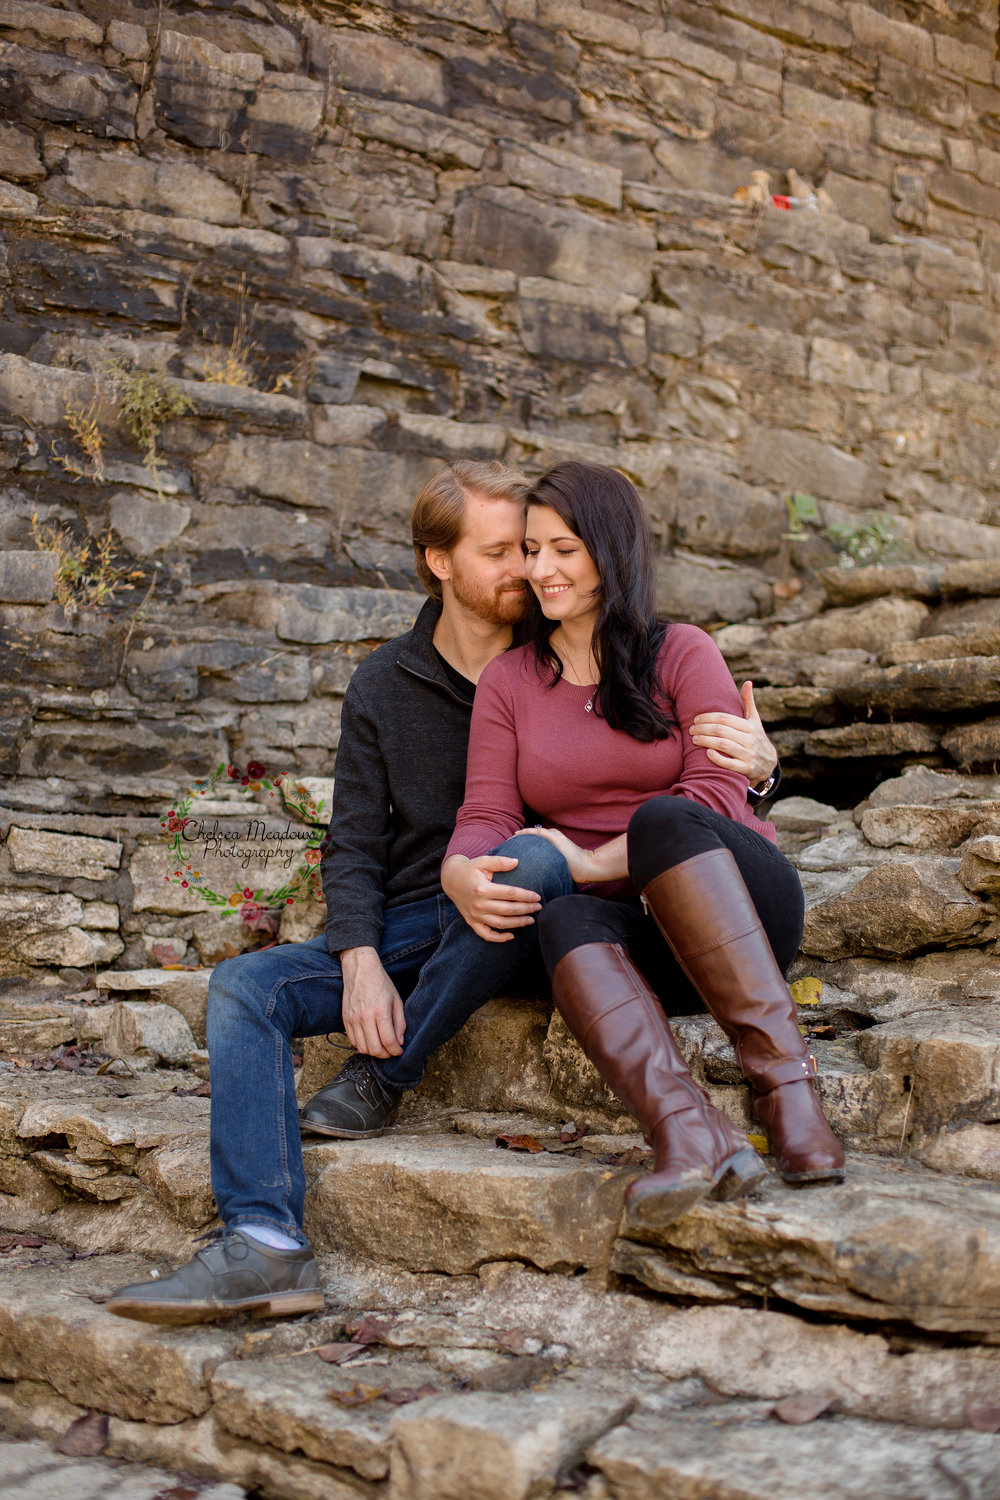 Kassie & Josh Engagement - Nashville Couple Photographer - Chelsea Meadows Photography (30).jpg